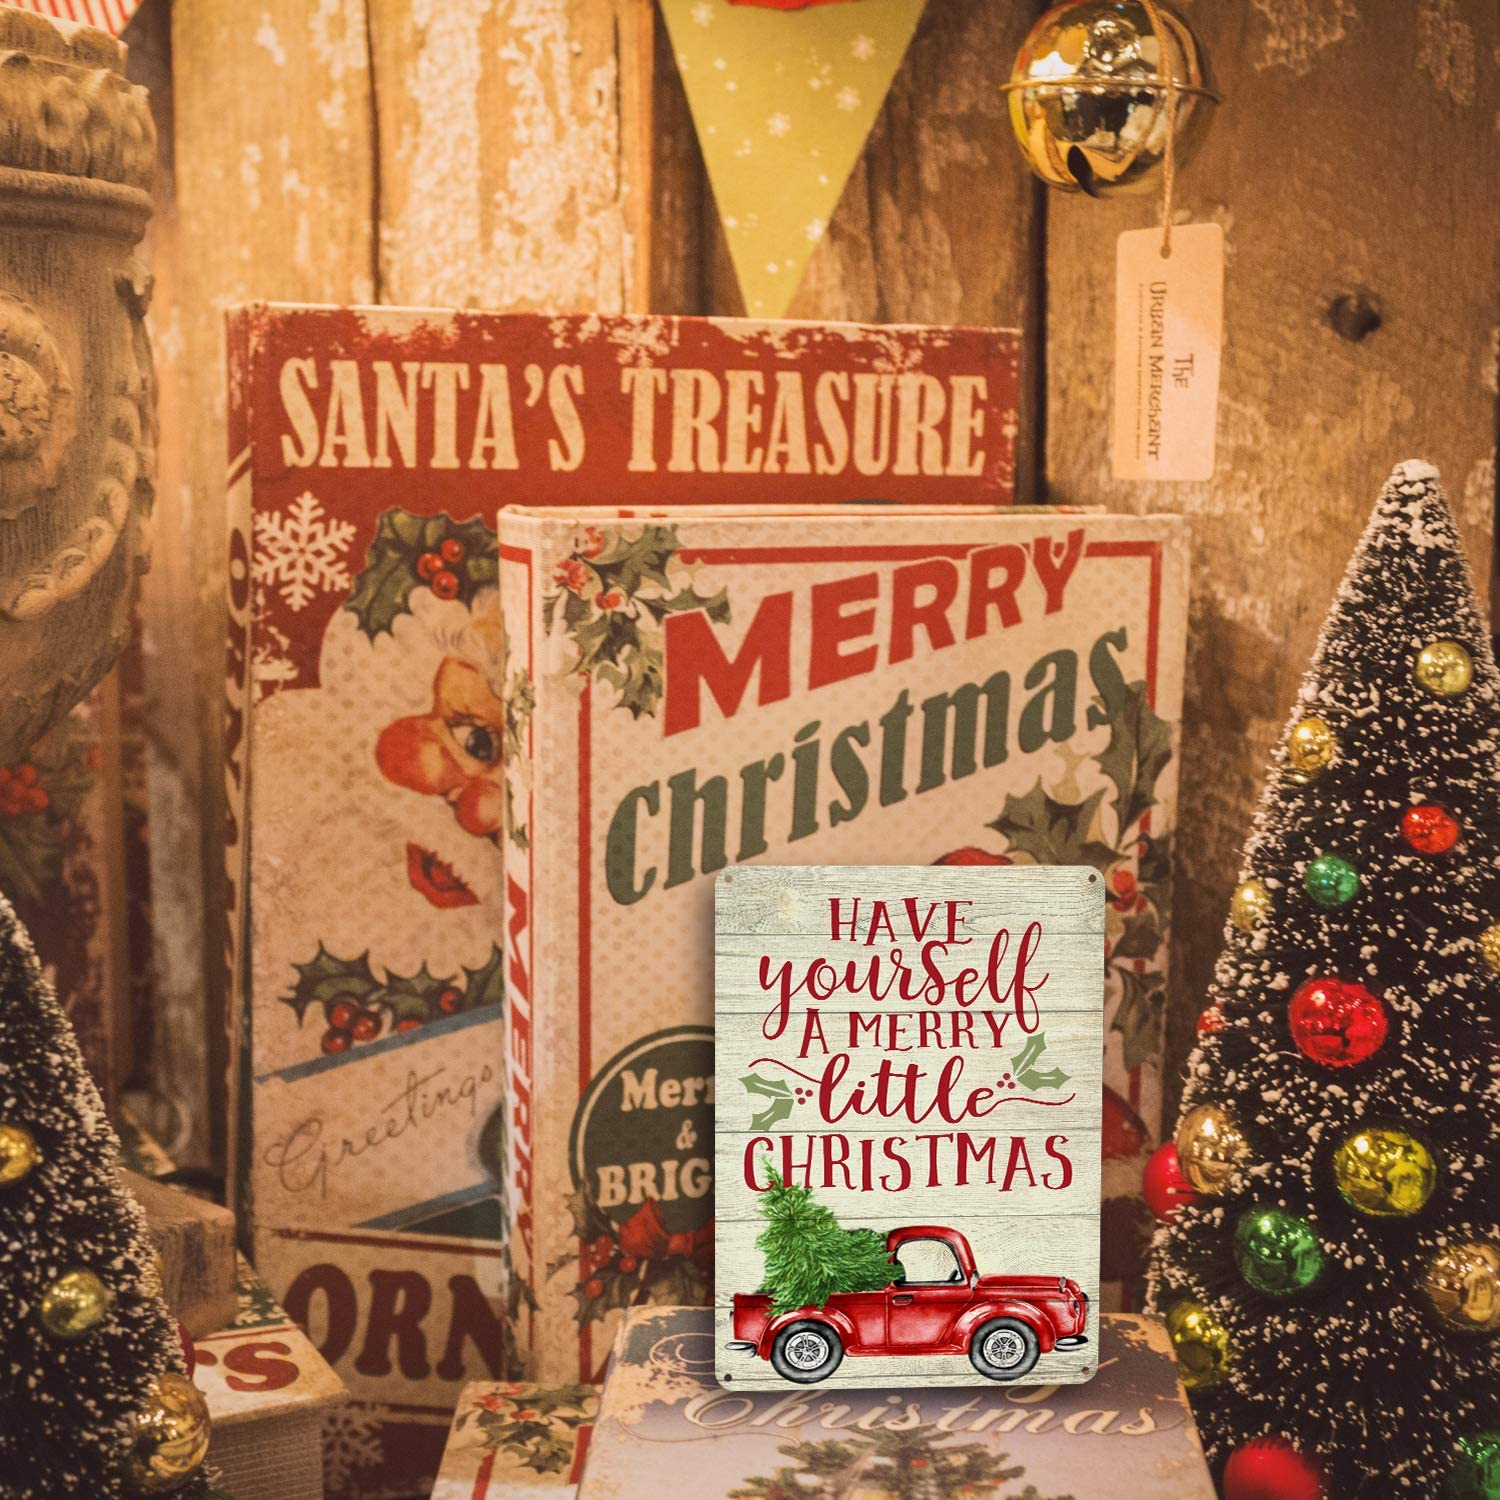 Goutoports Christmas Decor Signs Farmhouse Decorative Red Truck Vintage Wall Decorations Have Yourself a Merry Little Christmas 7.9x11.8 Inch